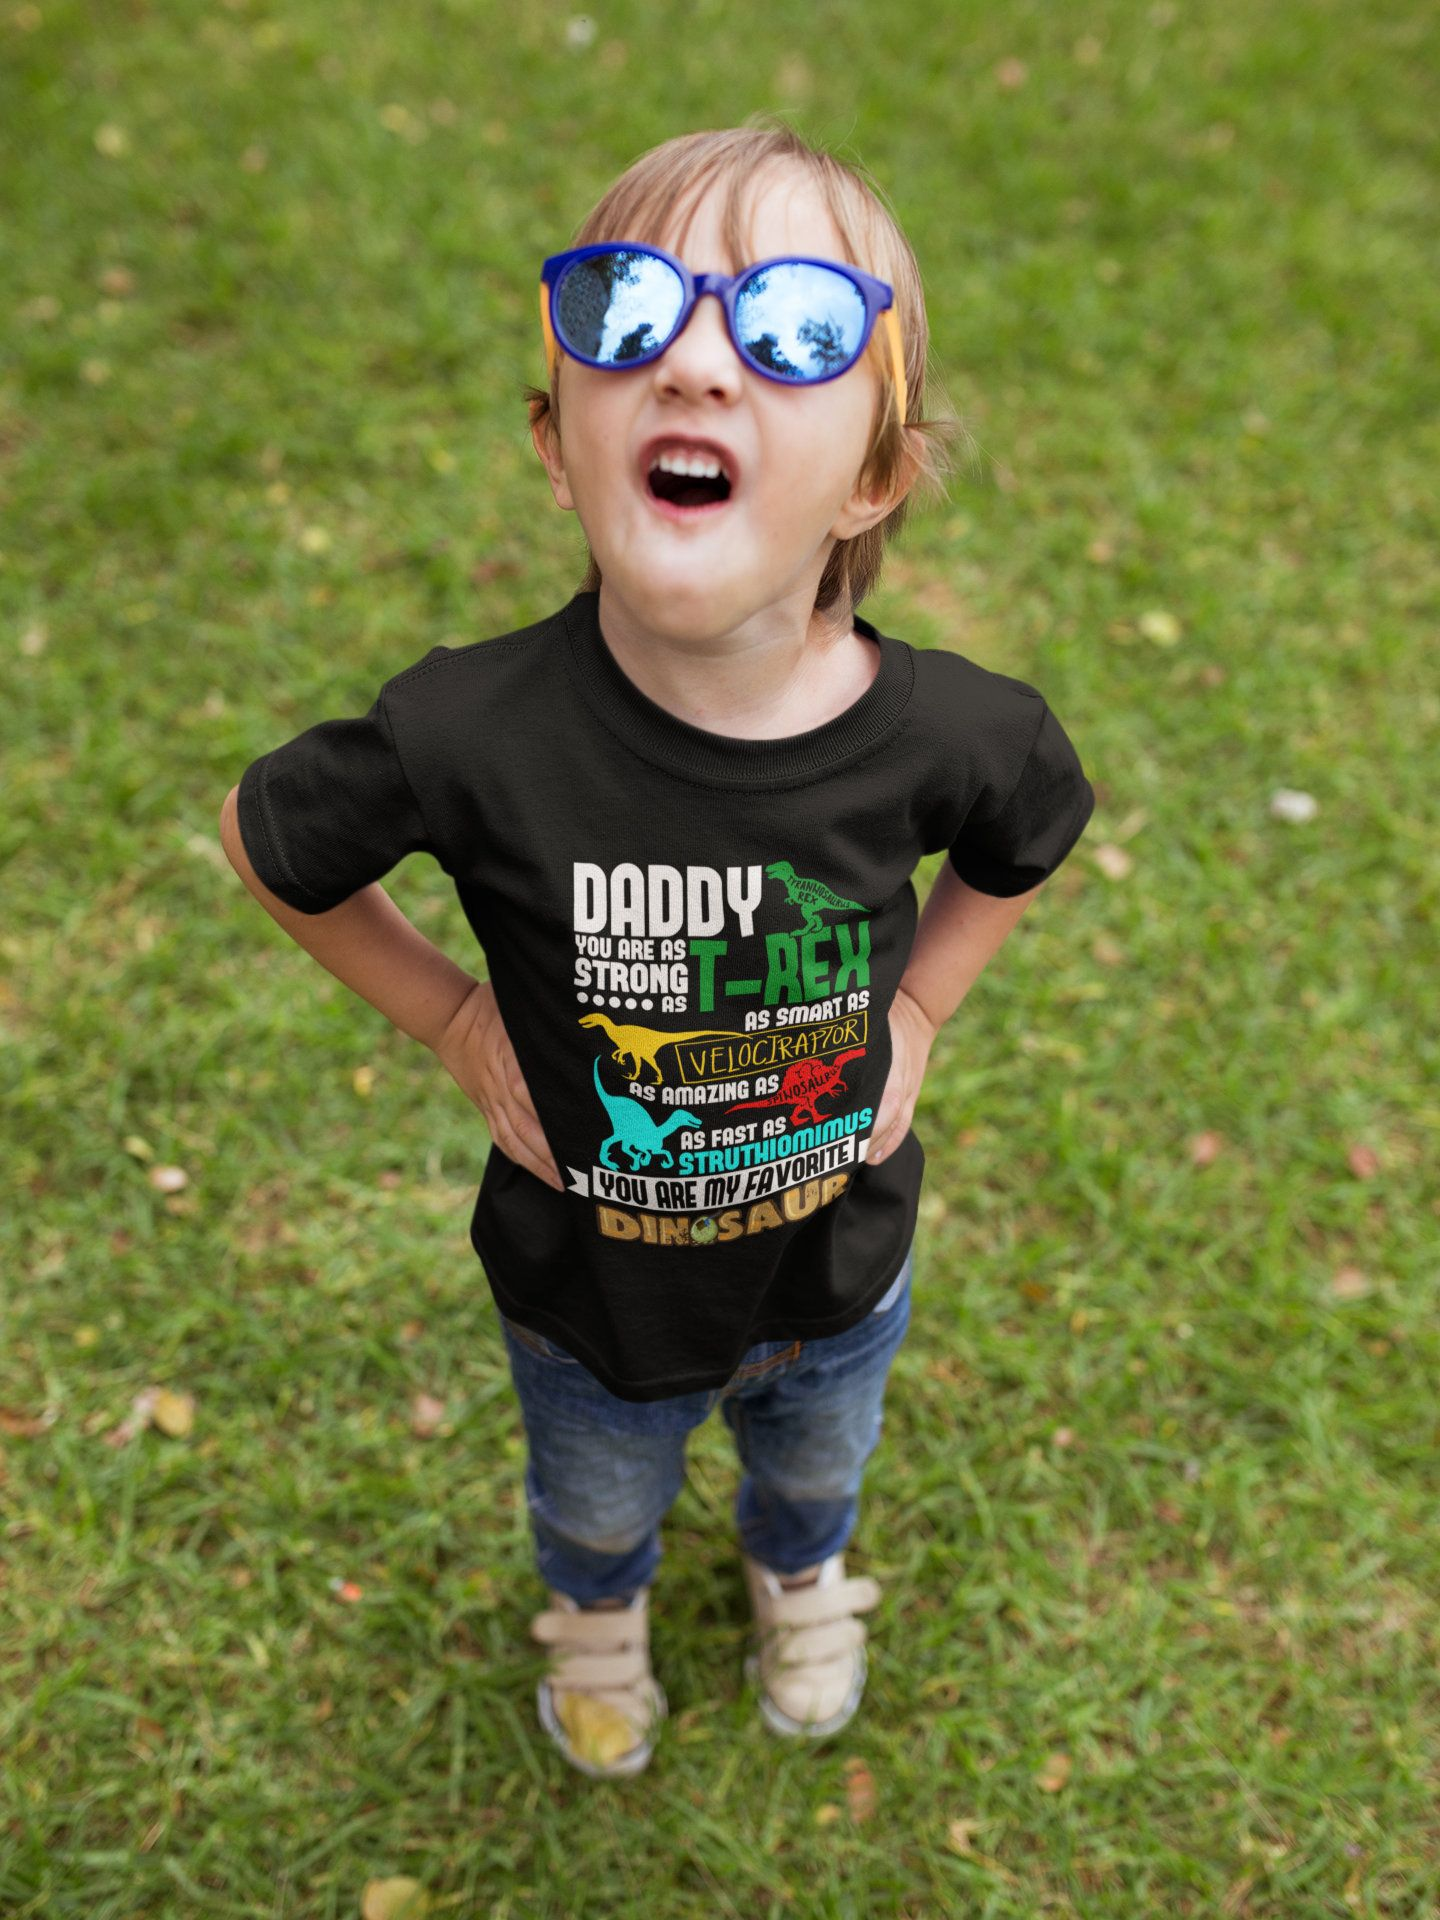 a24fe0b3 Daddy Favorite Dinosaur Youth Short Sleeve T-Shirt by DaveKingGlobal on Etsy